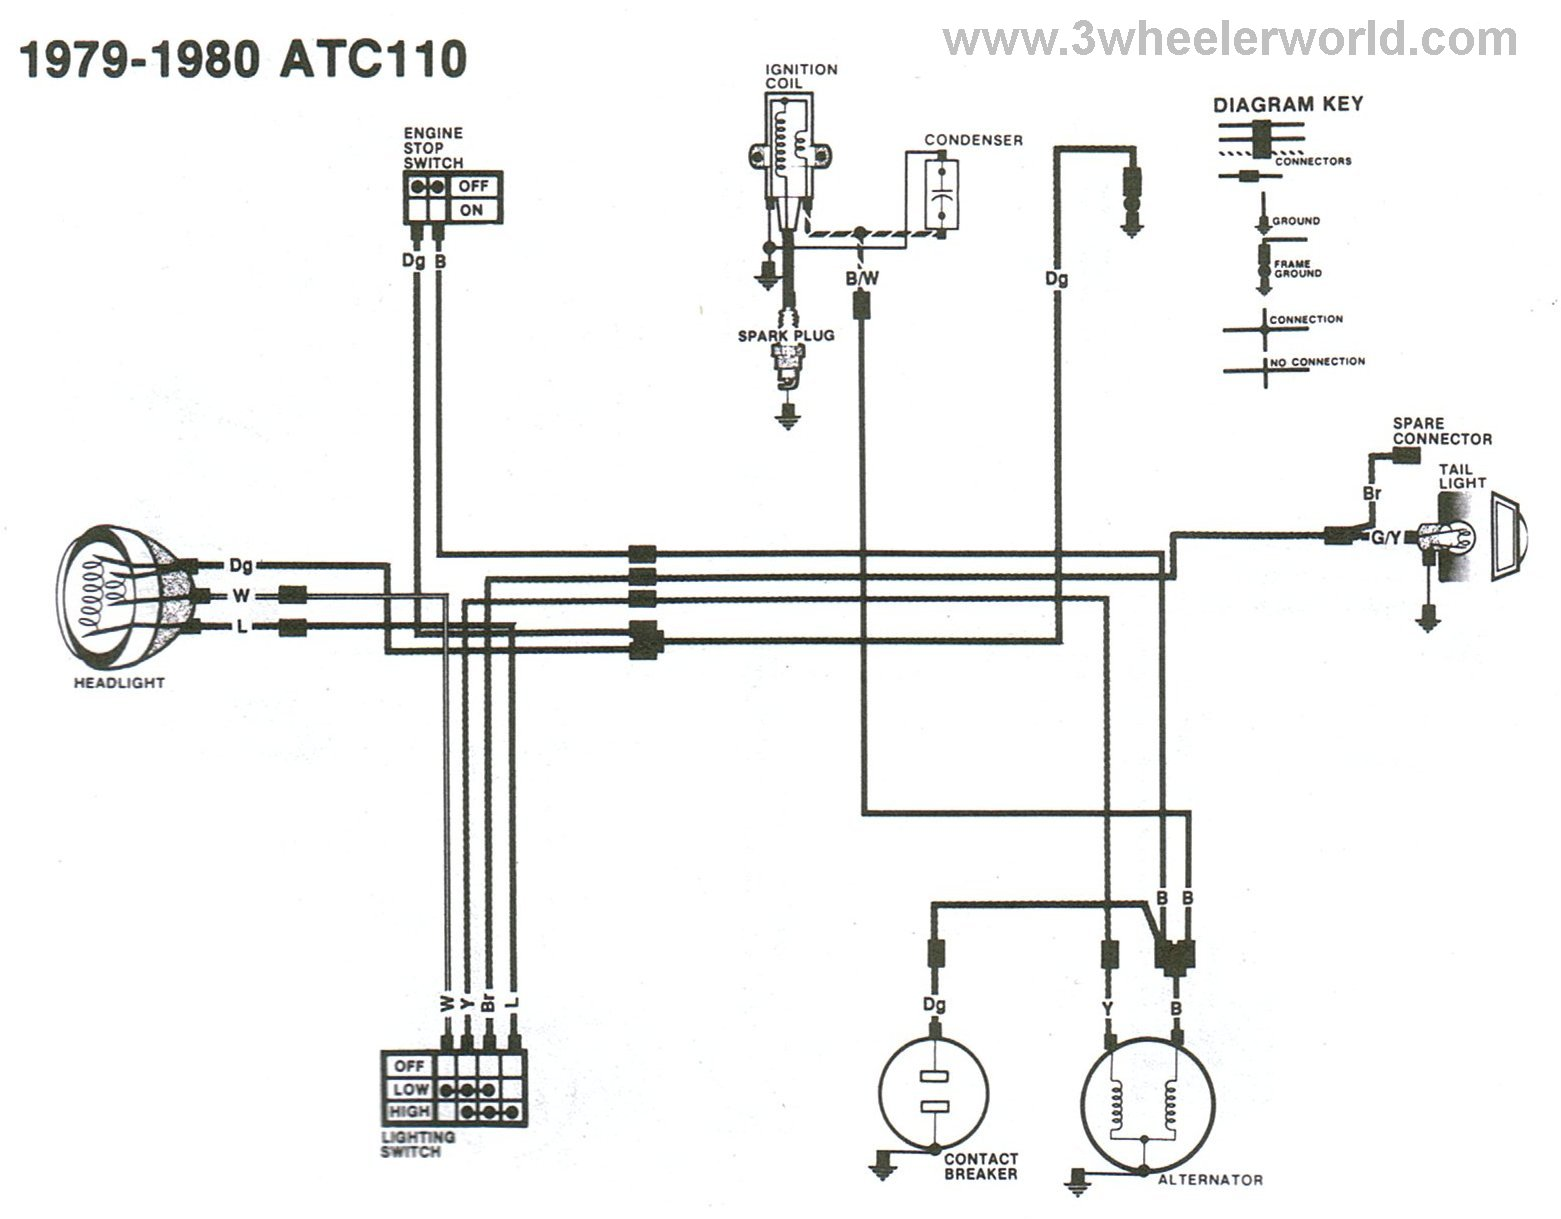 ATC110x79Thru80 1980 honda atc 110 wiring diagram honda 50 wiring diagram \u2022 wiring 1986 honda atc 250r wiring diagram at eliteediting.co